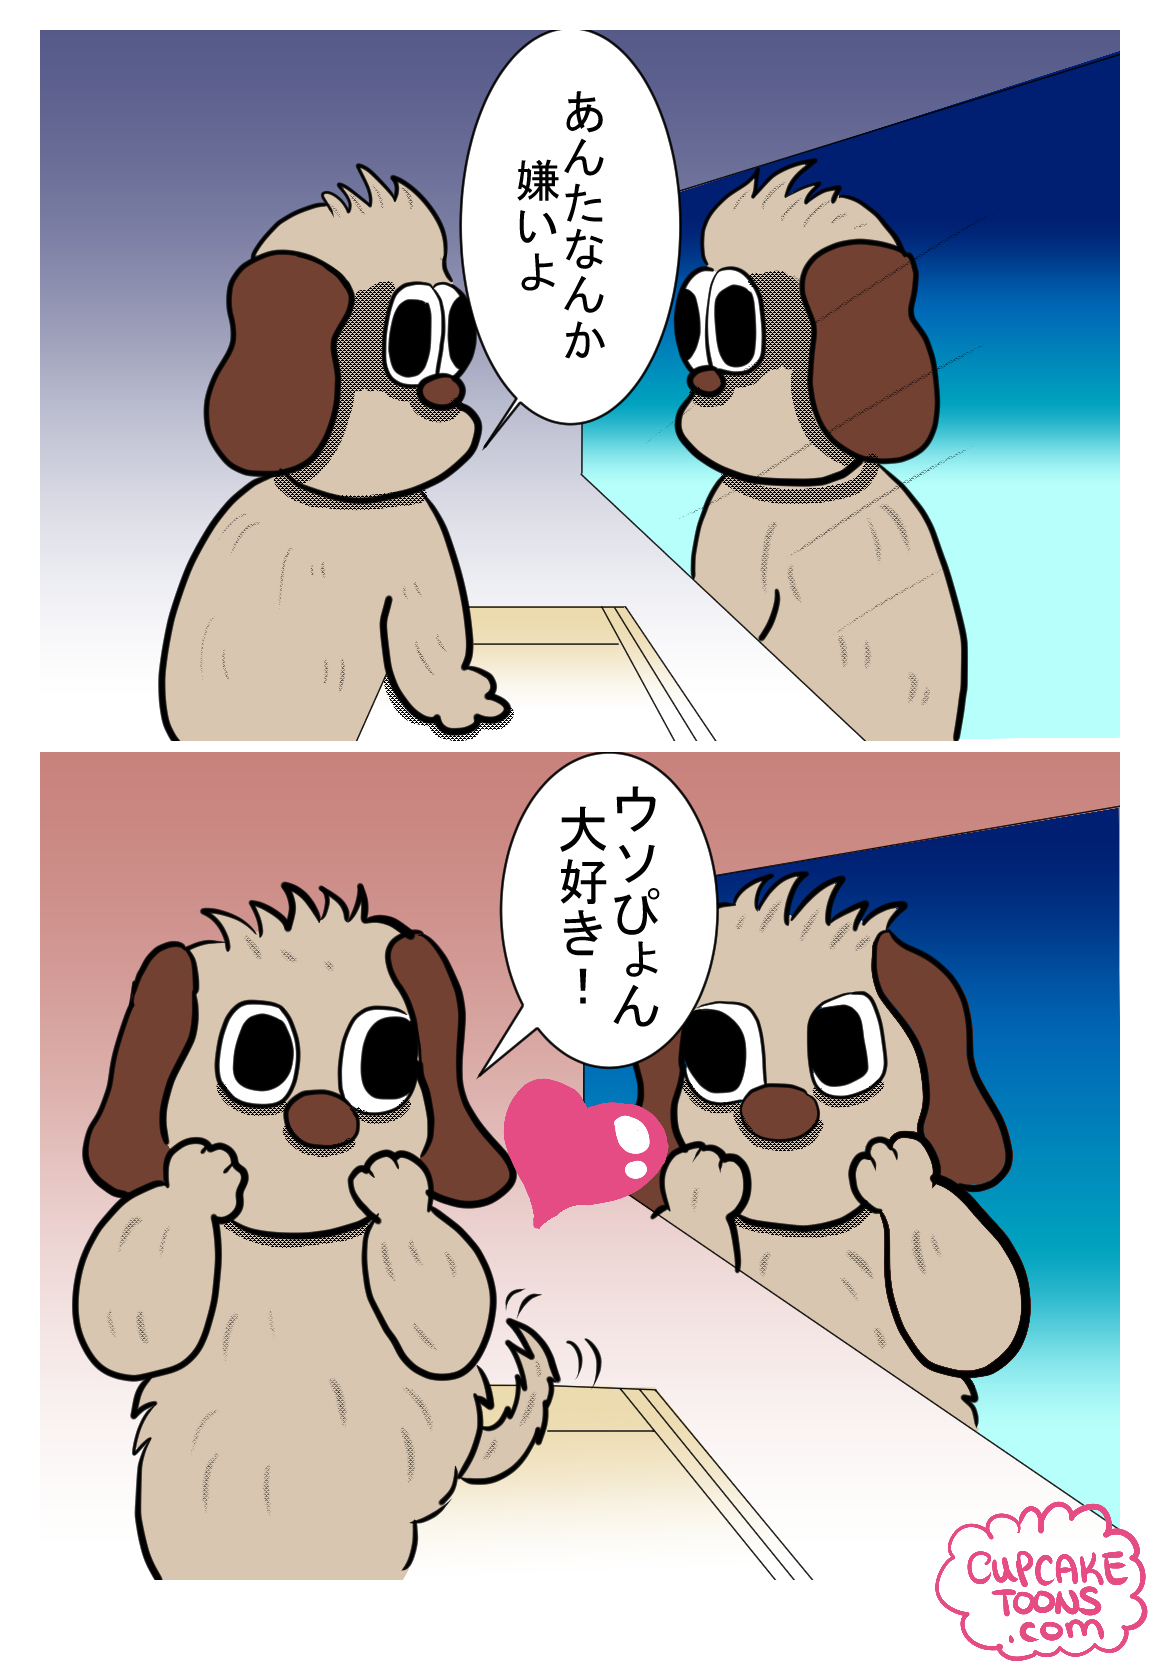 Confused Dog (Japanese)